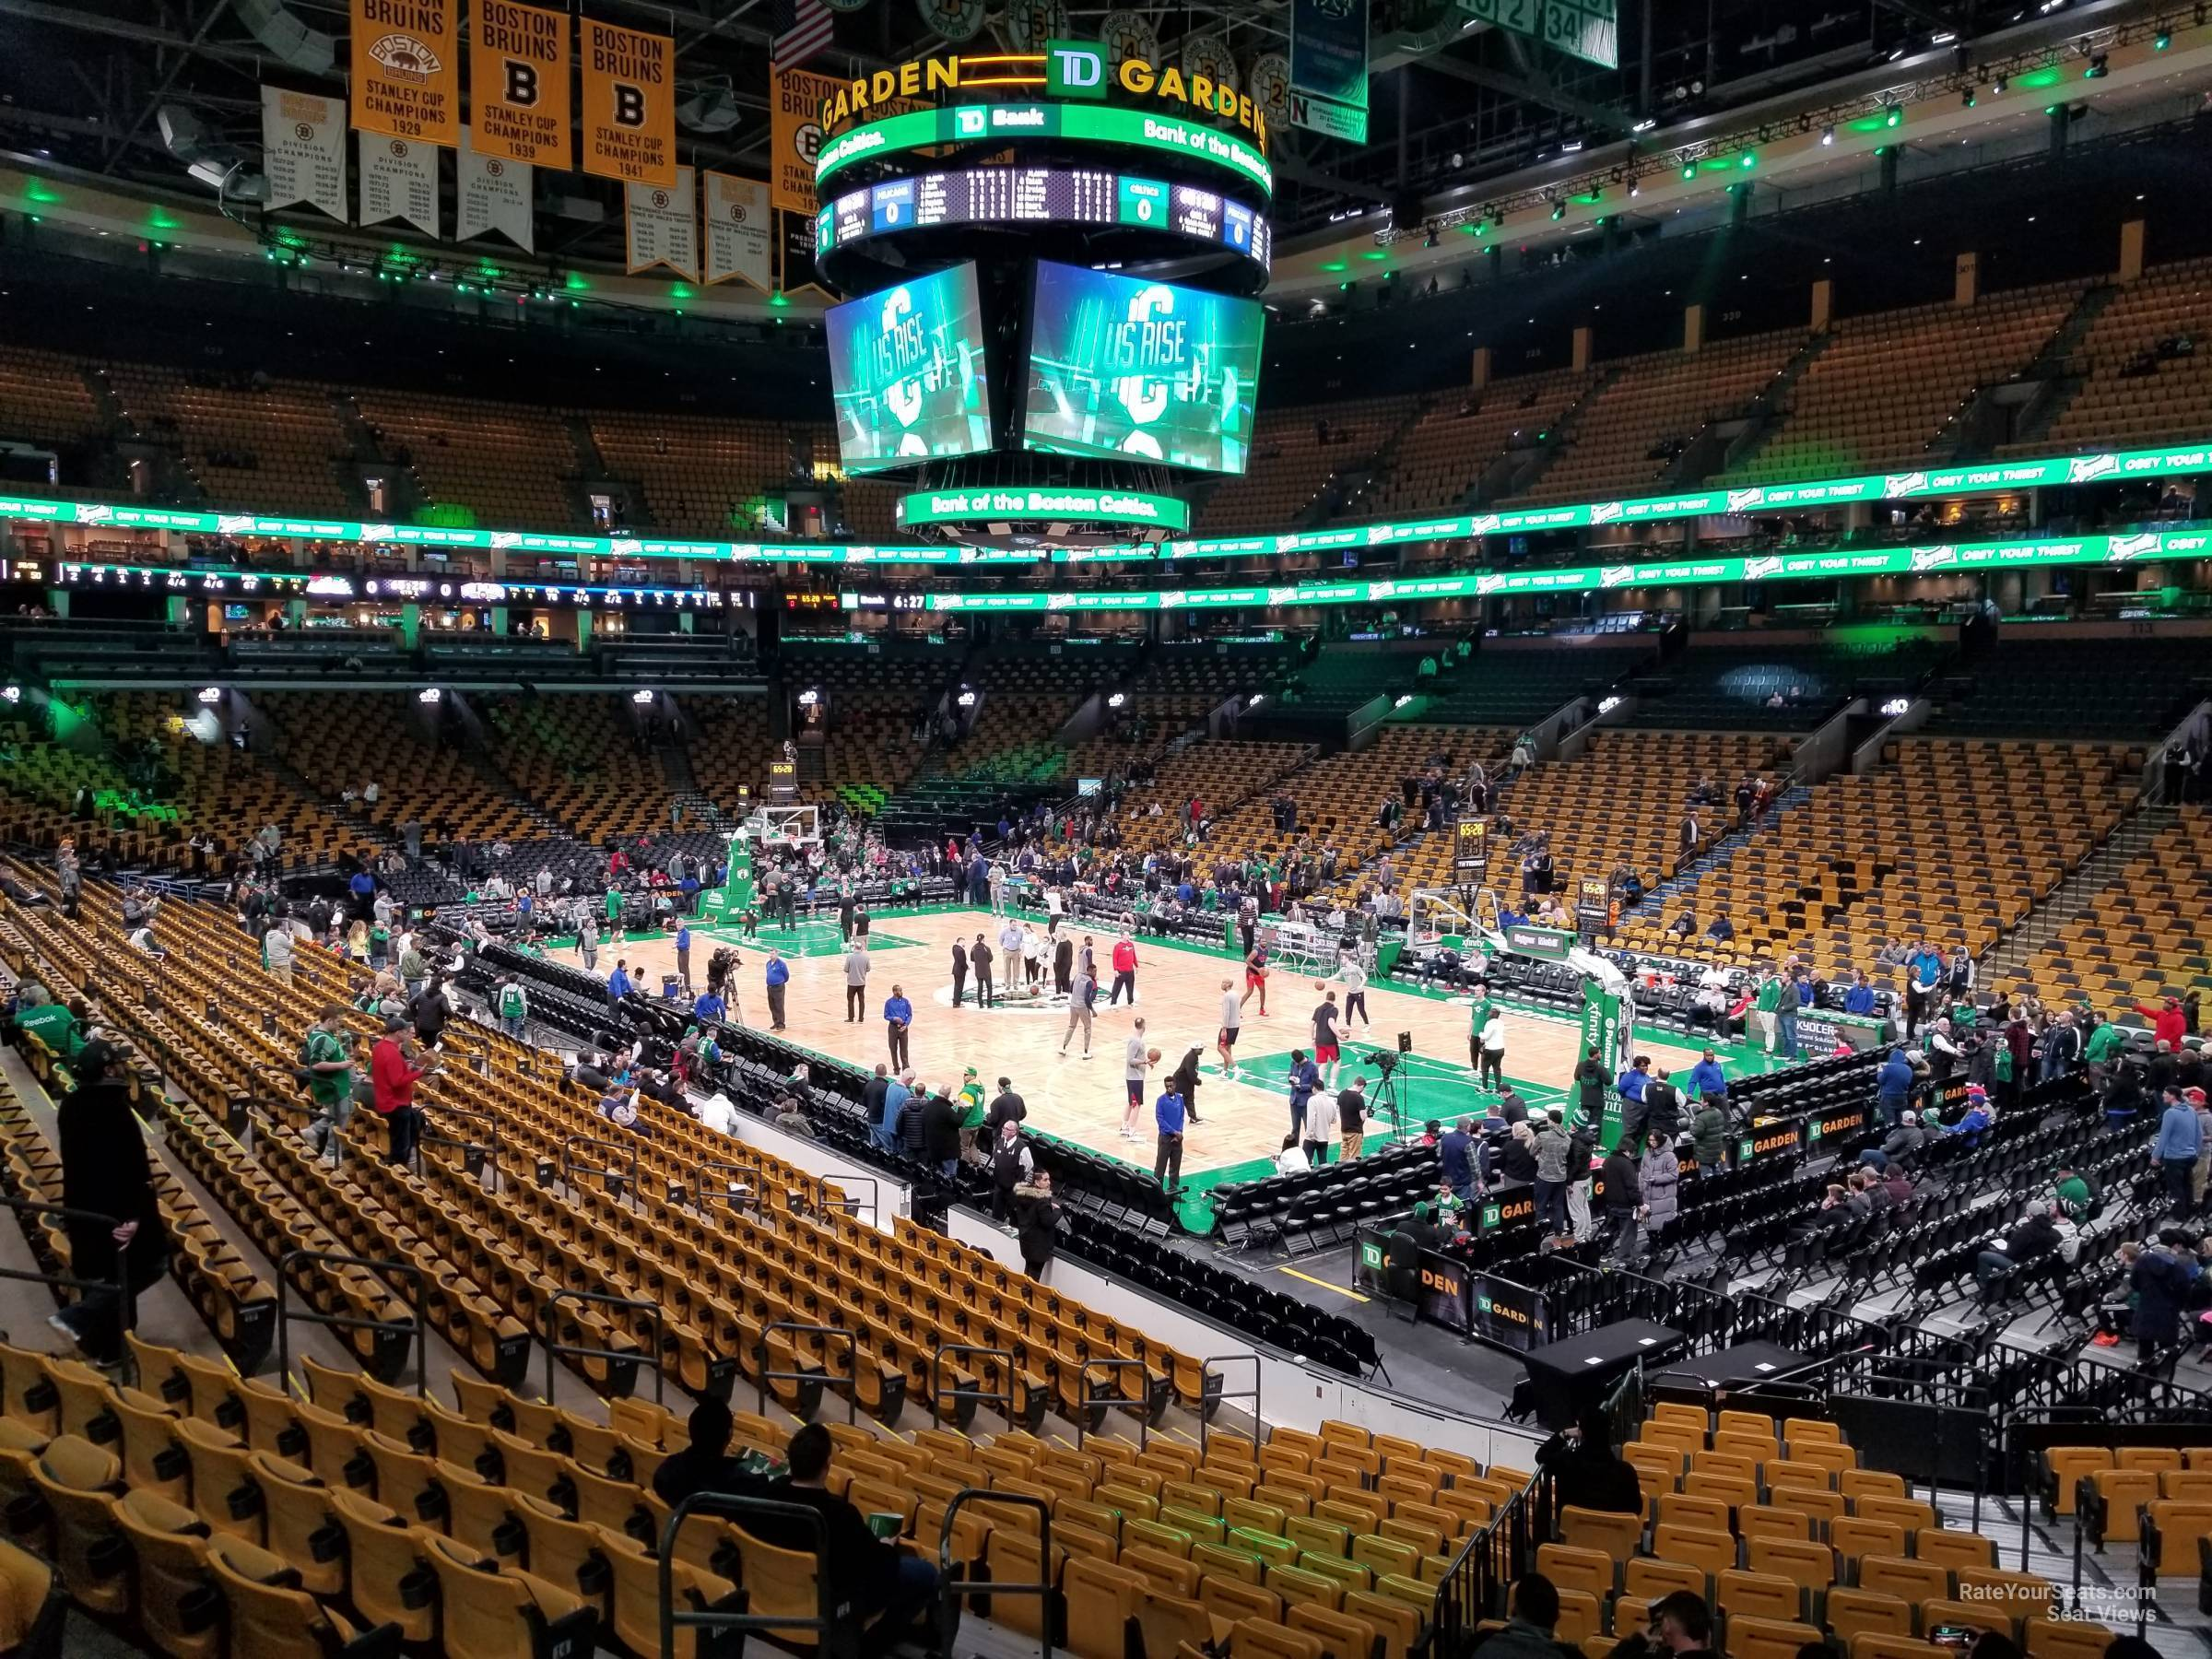 Boston Celtics Seat View for TD Garden Loge 9, Row 20